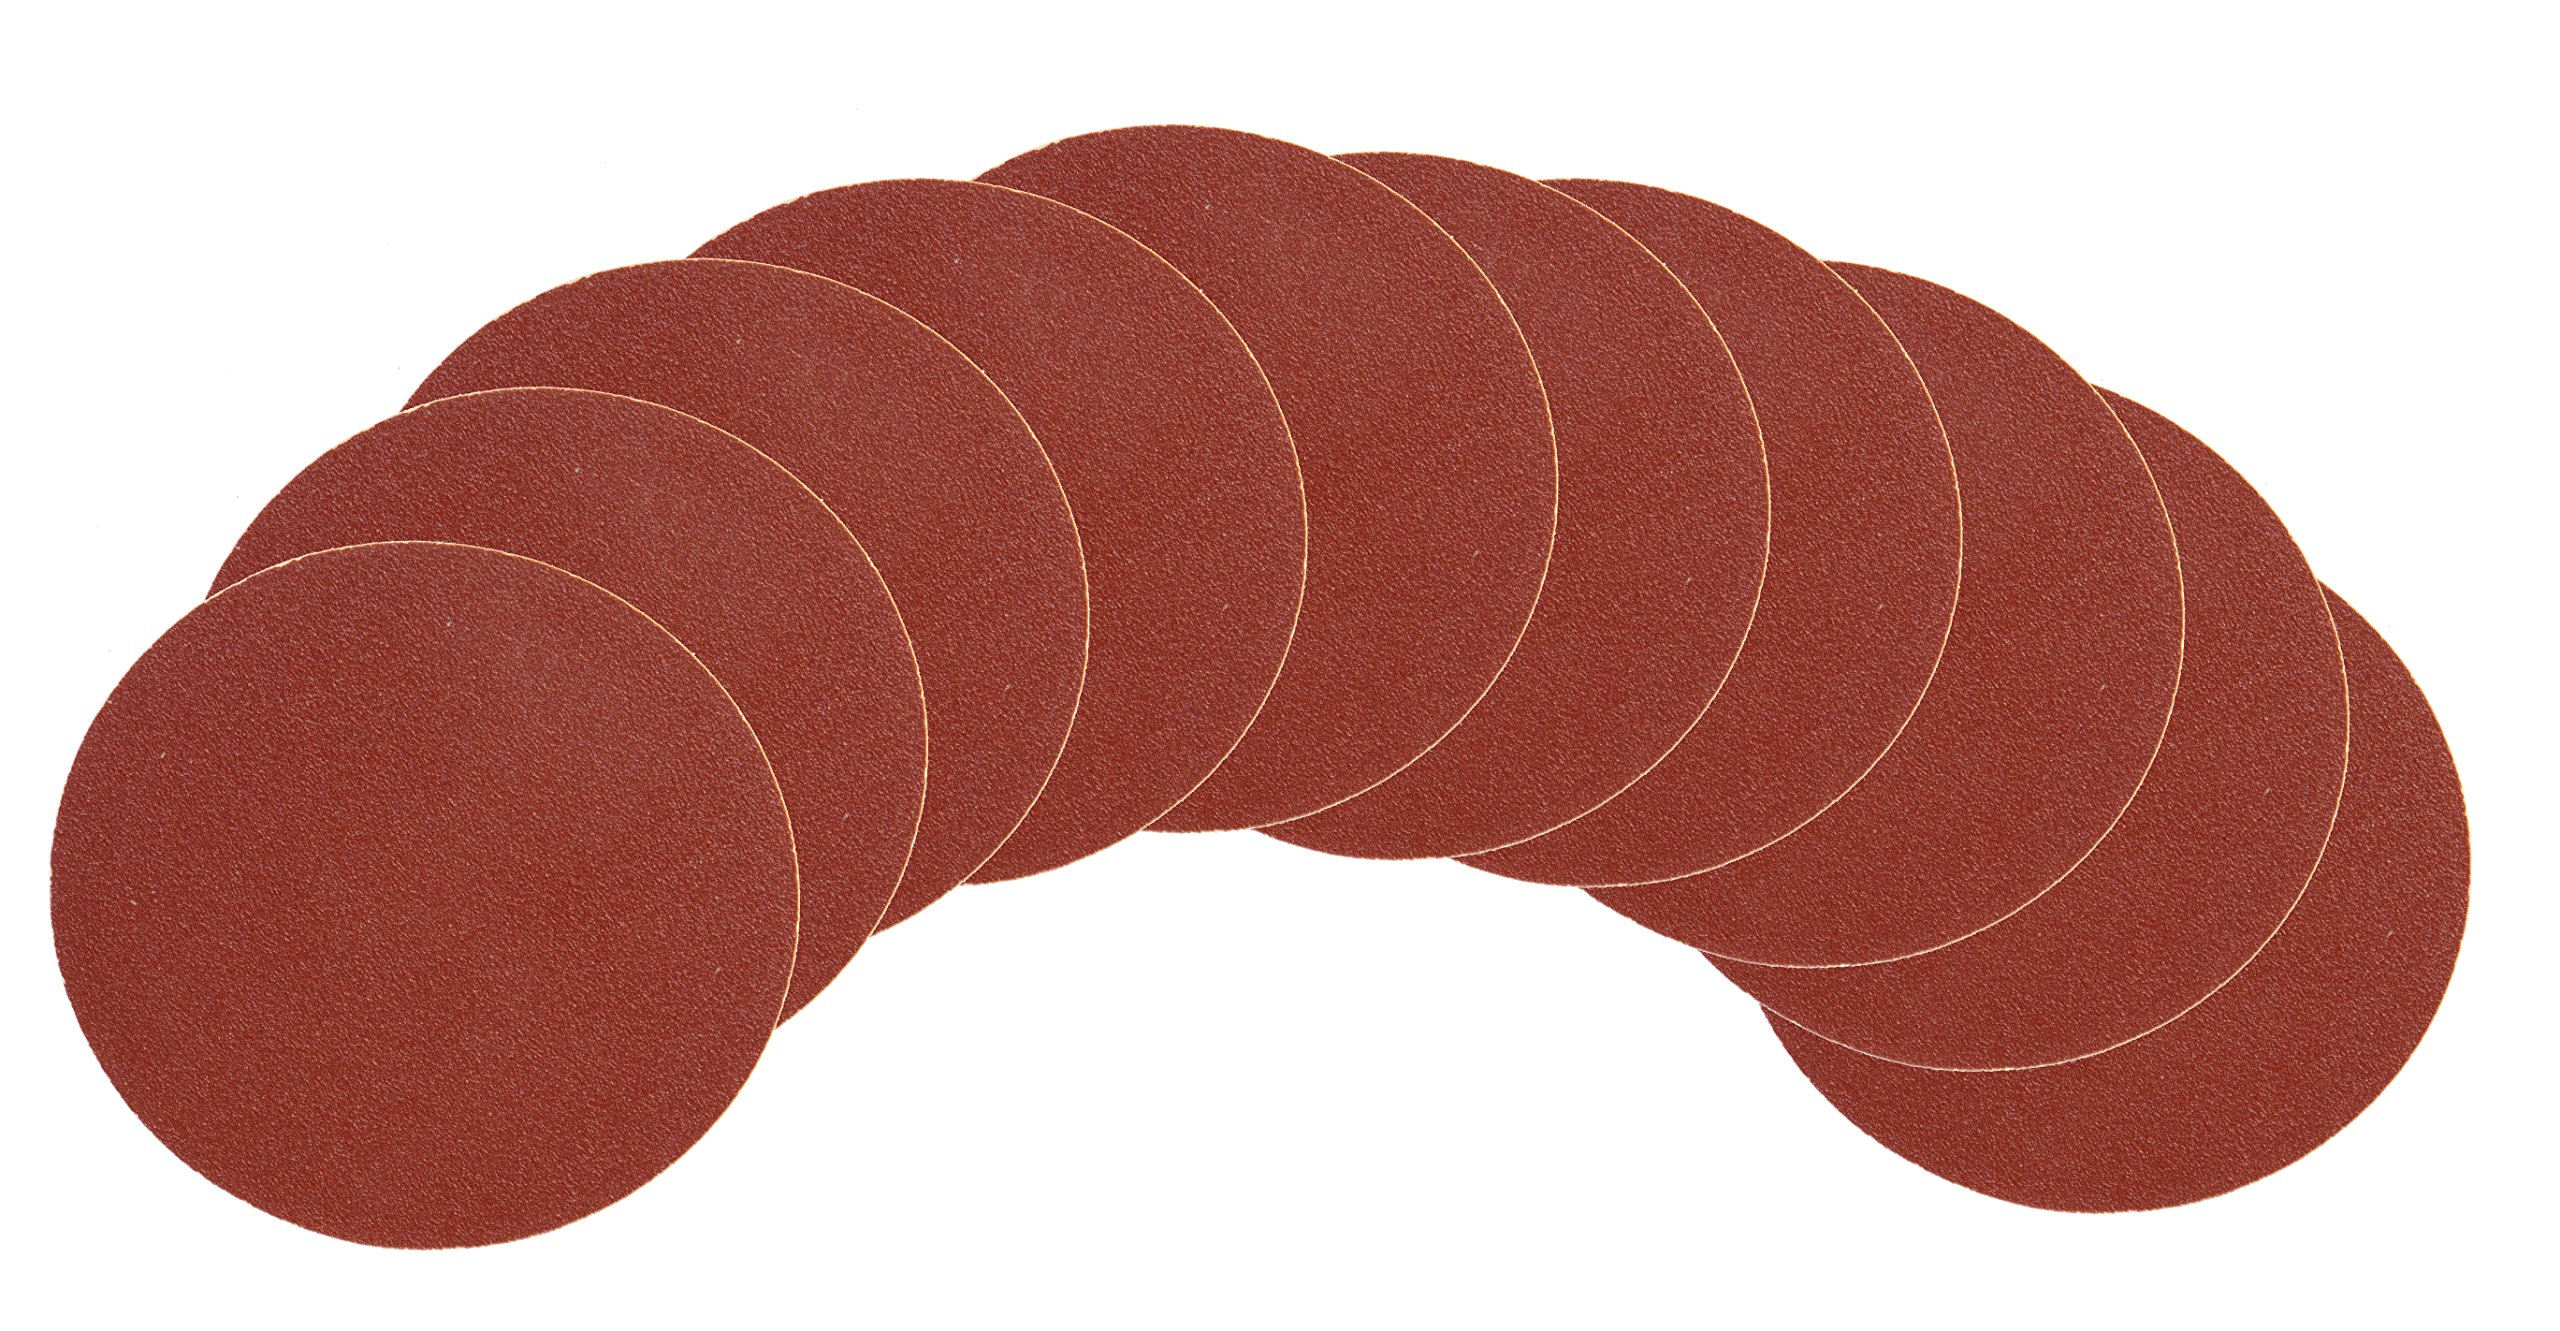 WEN 9SD120 120-Grit Adhesive-Backed 9-Inch Disc Sandpaper, 10-Pack